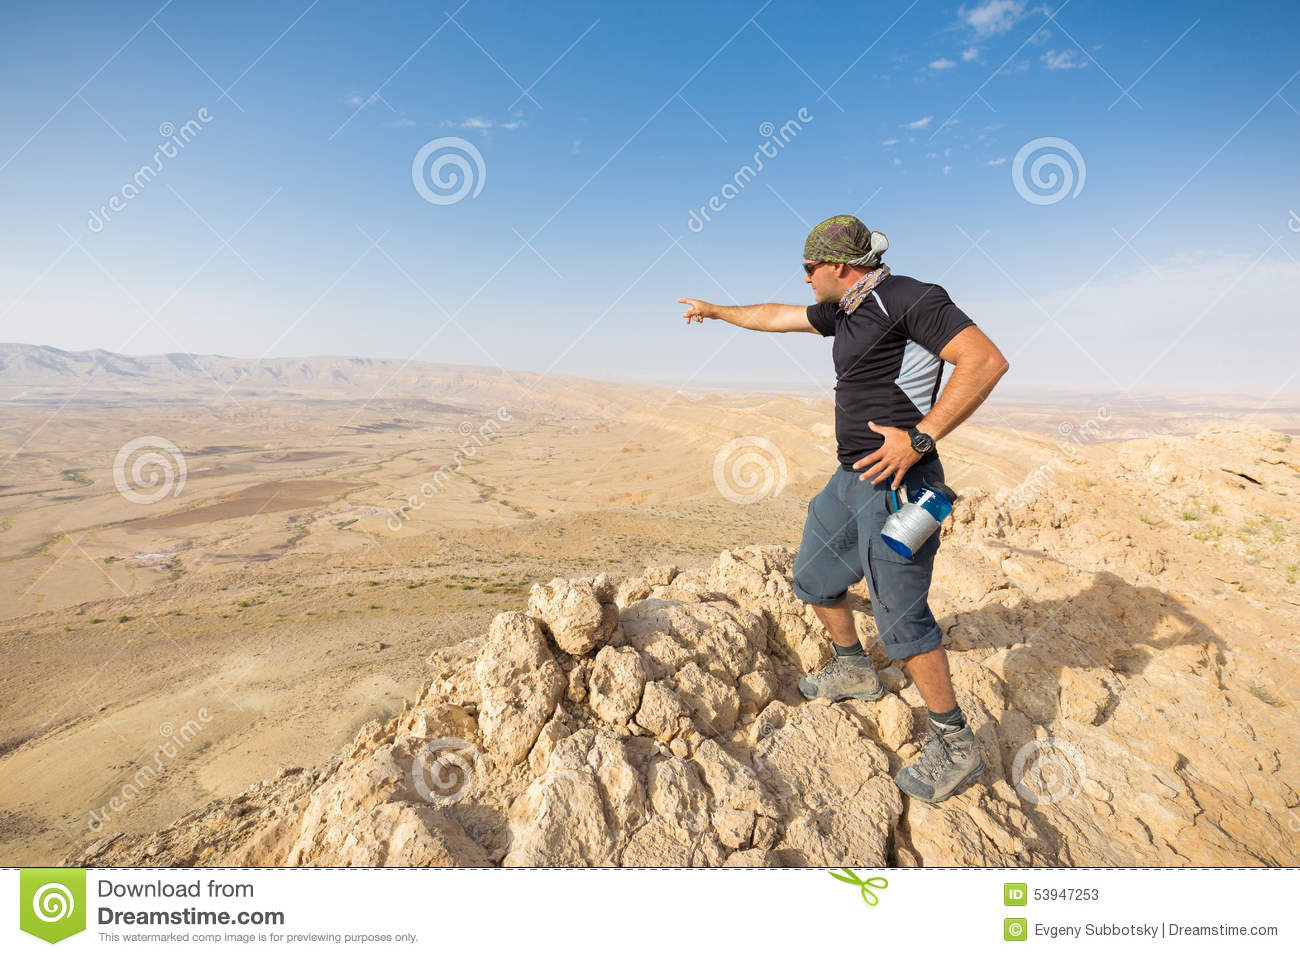 Clip Art Person Standing On the Edge of a Cliff.